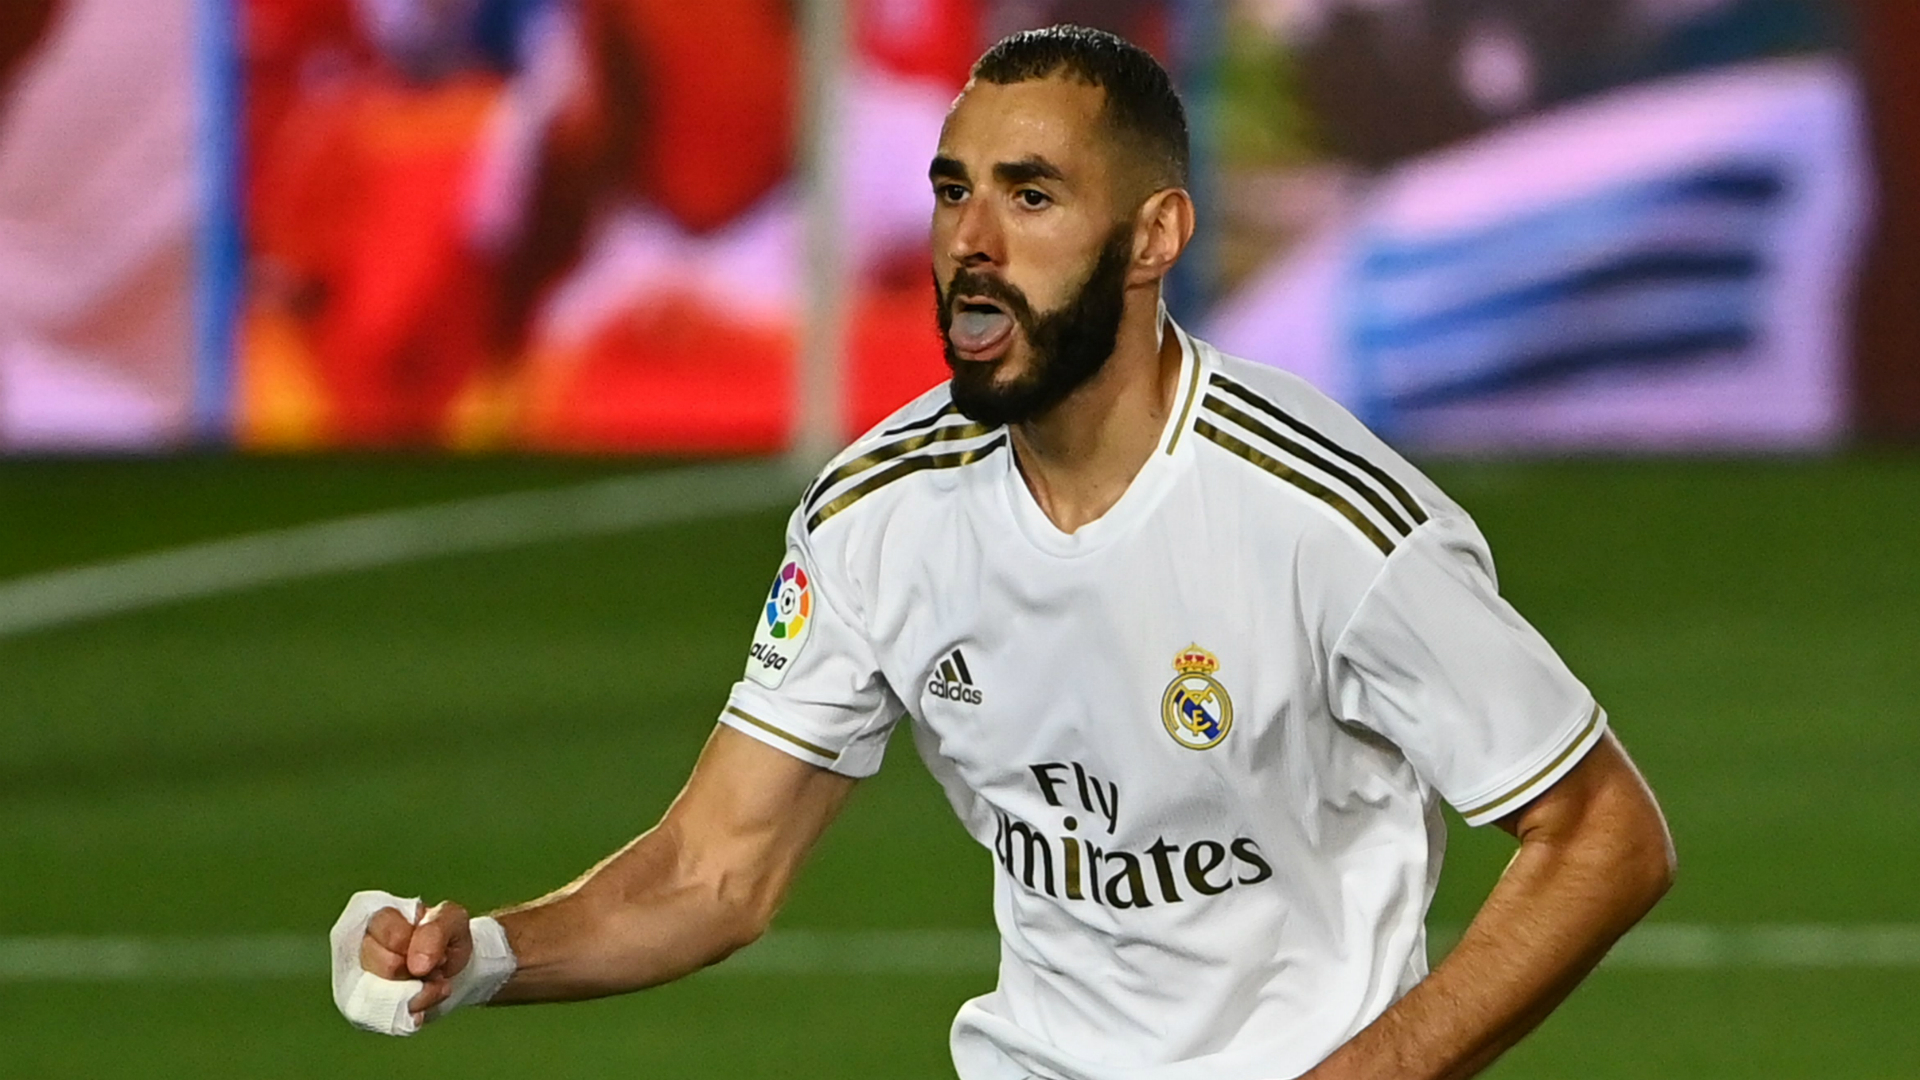 Benzema absent for Real Madrid's visit to Villarreal